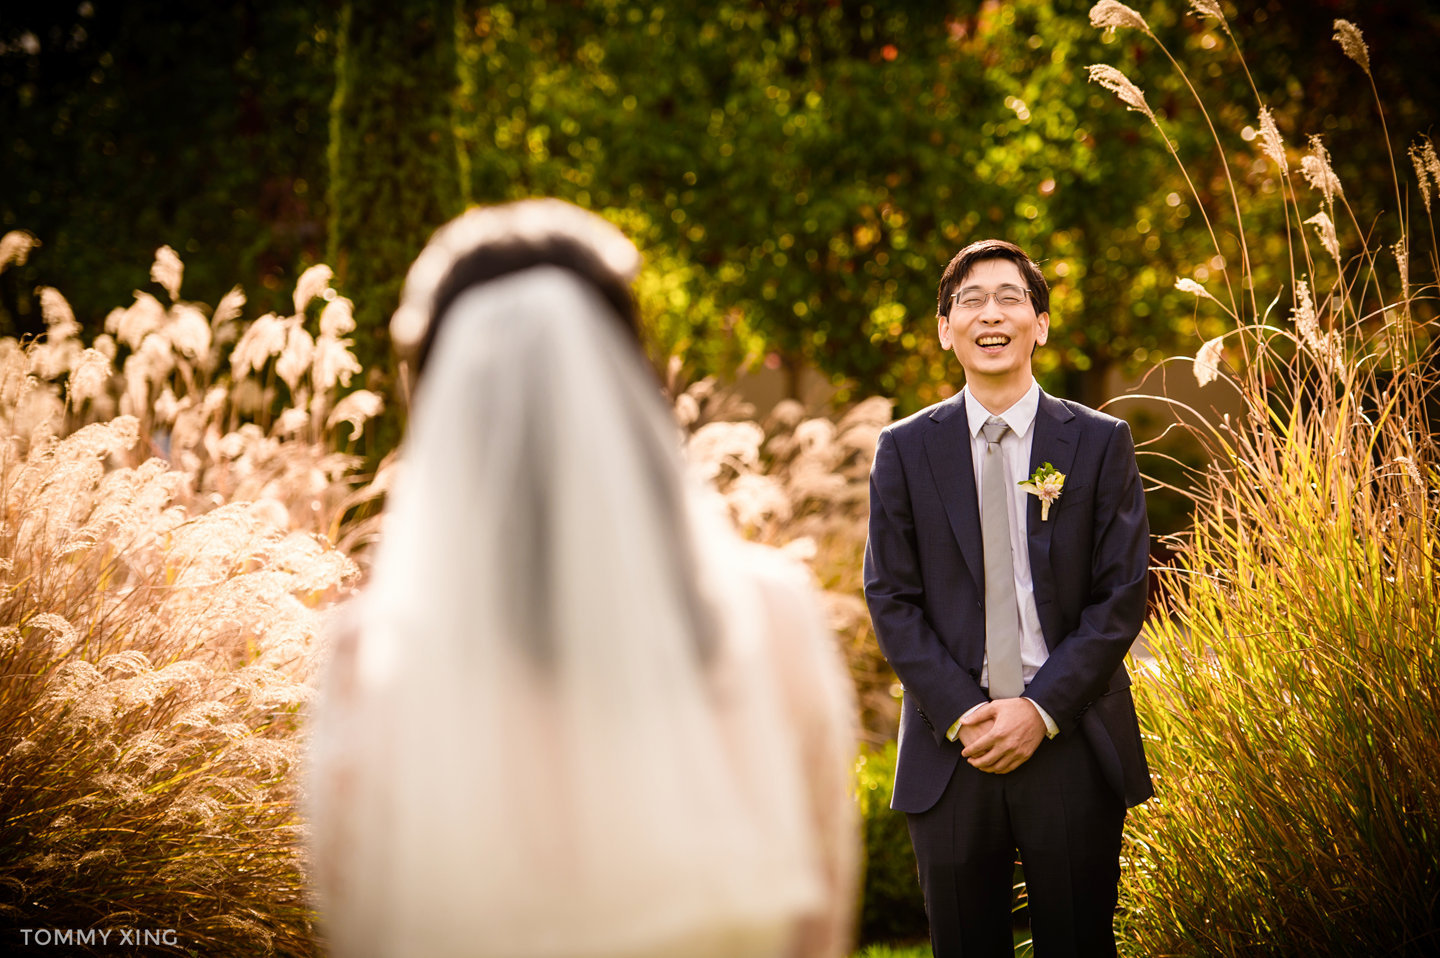 San Francisco Wedding Photography Valley Presbyterian Church WEDDING Tommy Xing Photography 洛杉矶旧金山婚礼婚纱照摄影师034.jpg